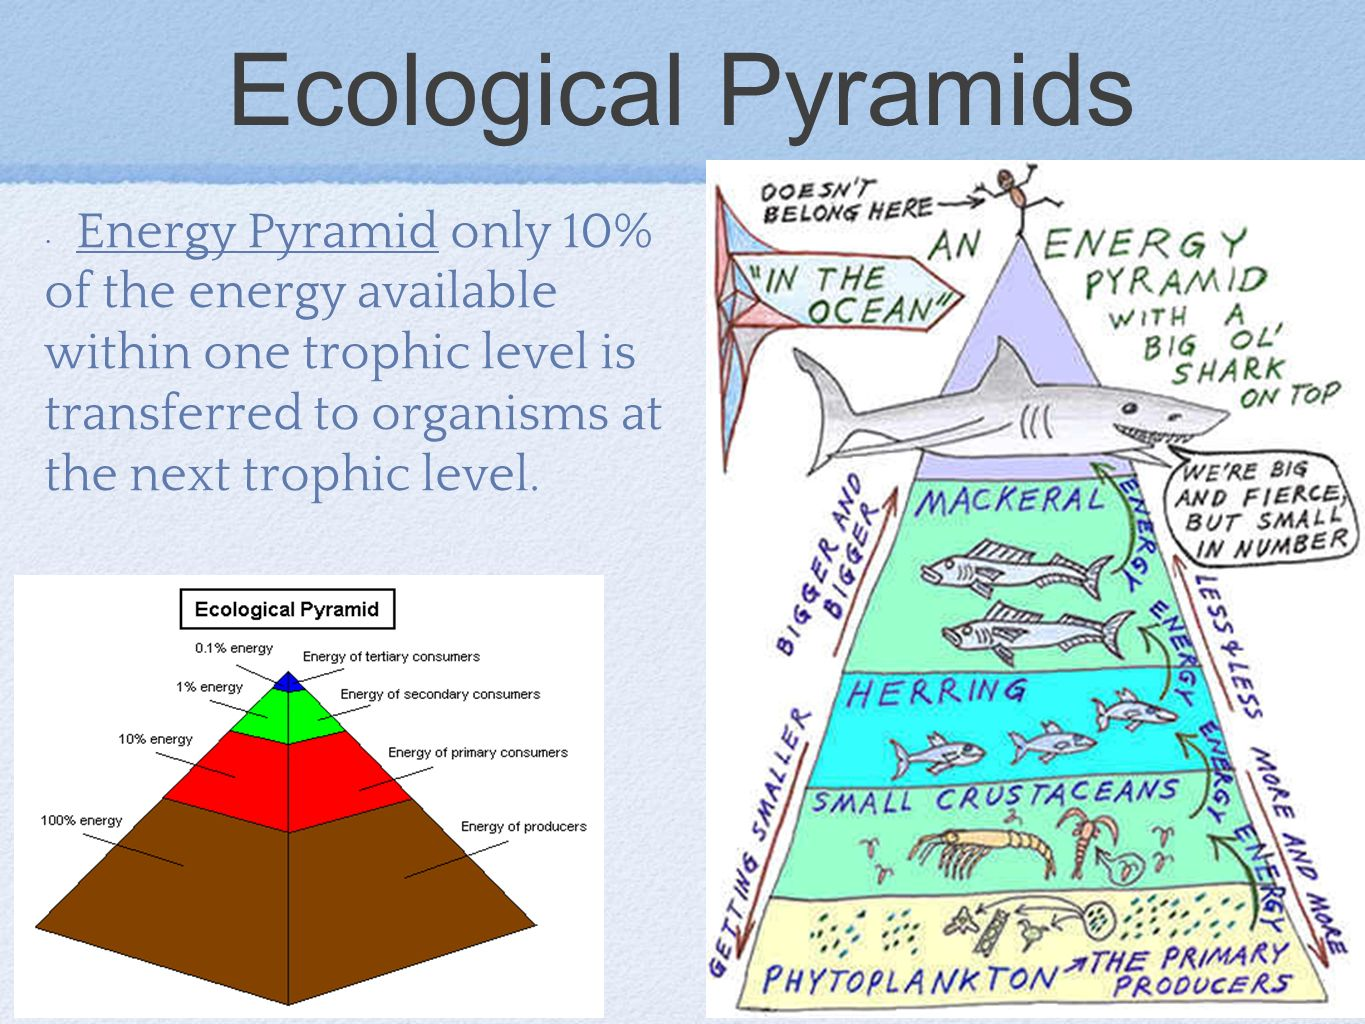 Ecological Pyramids Energy Pyramid only 10% of the energy available within one trophic level is transferred to organisms at the next trophic level.